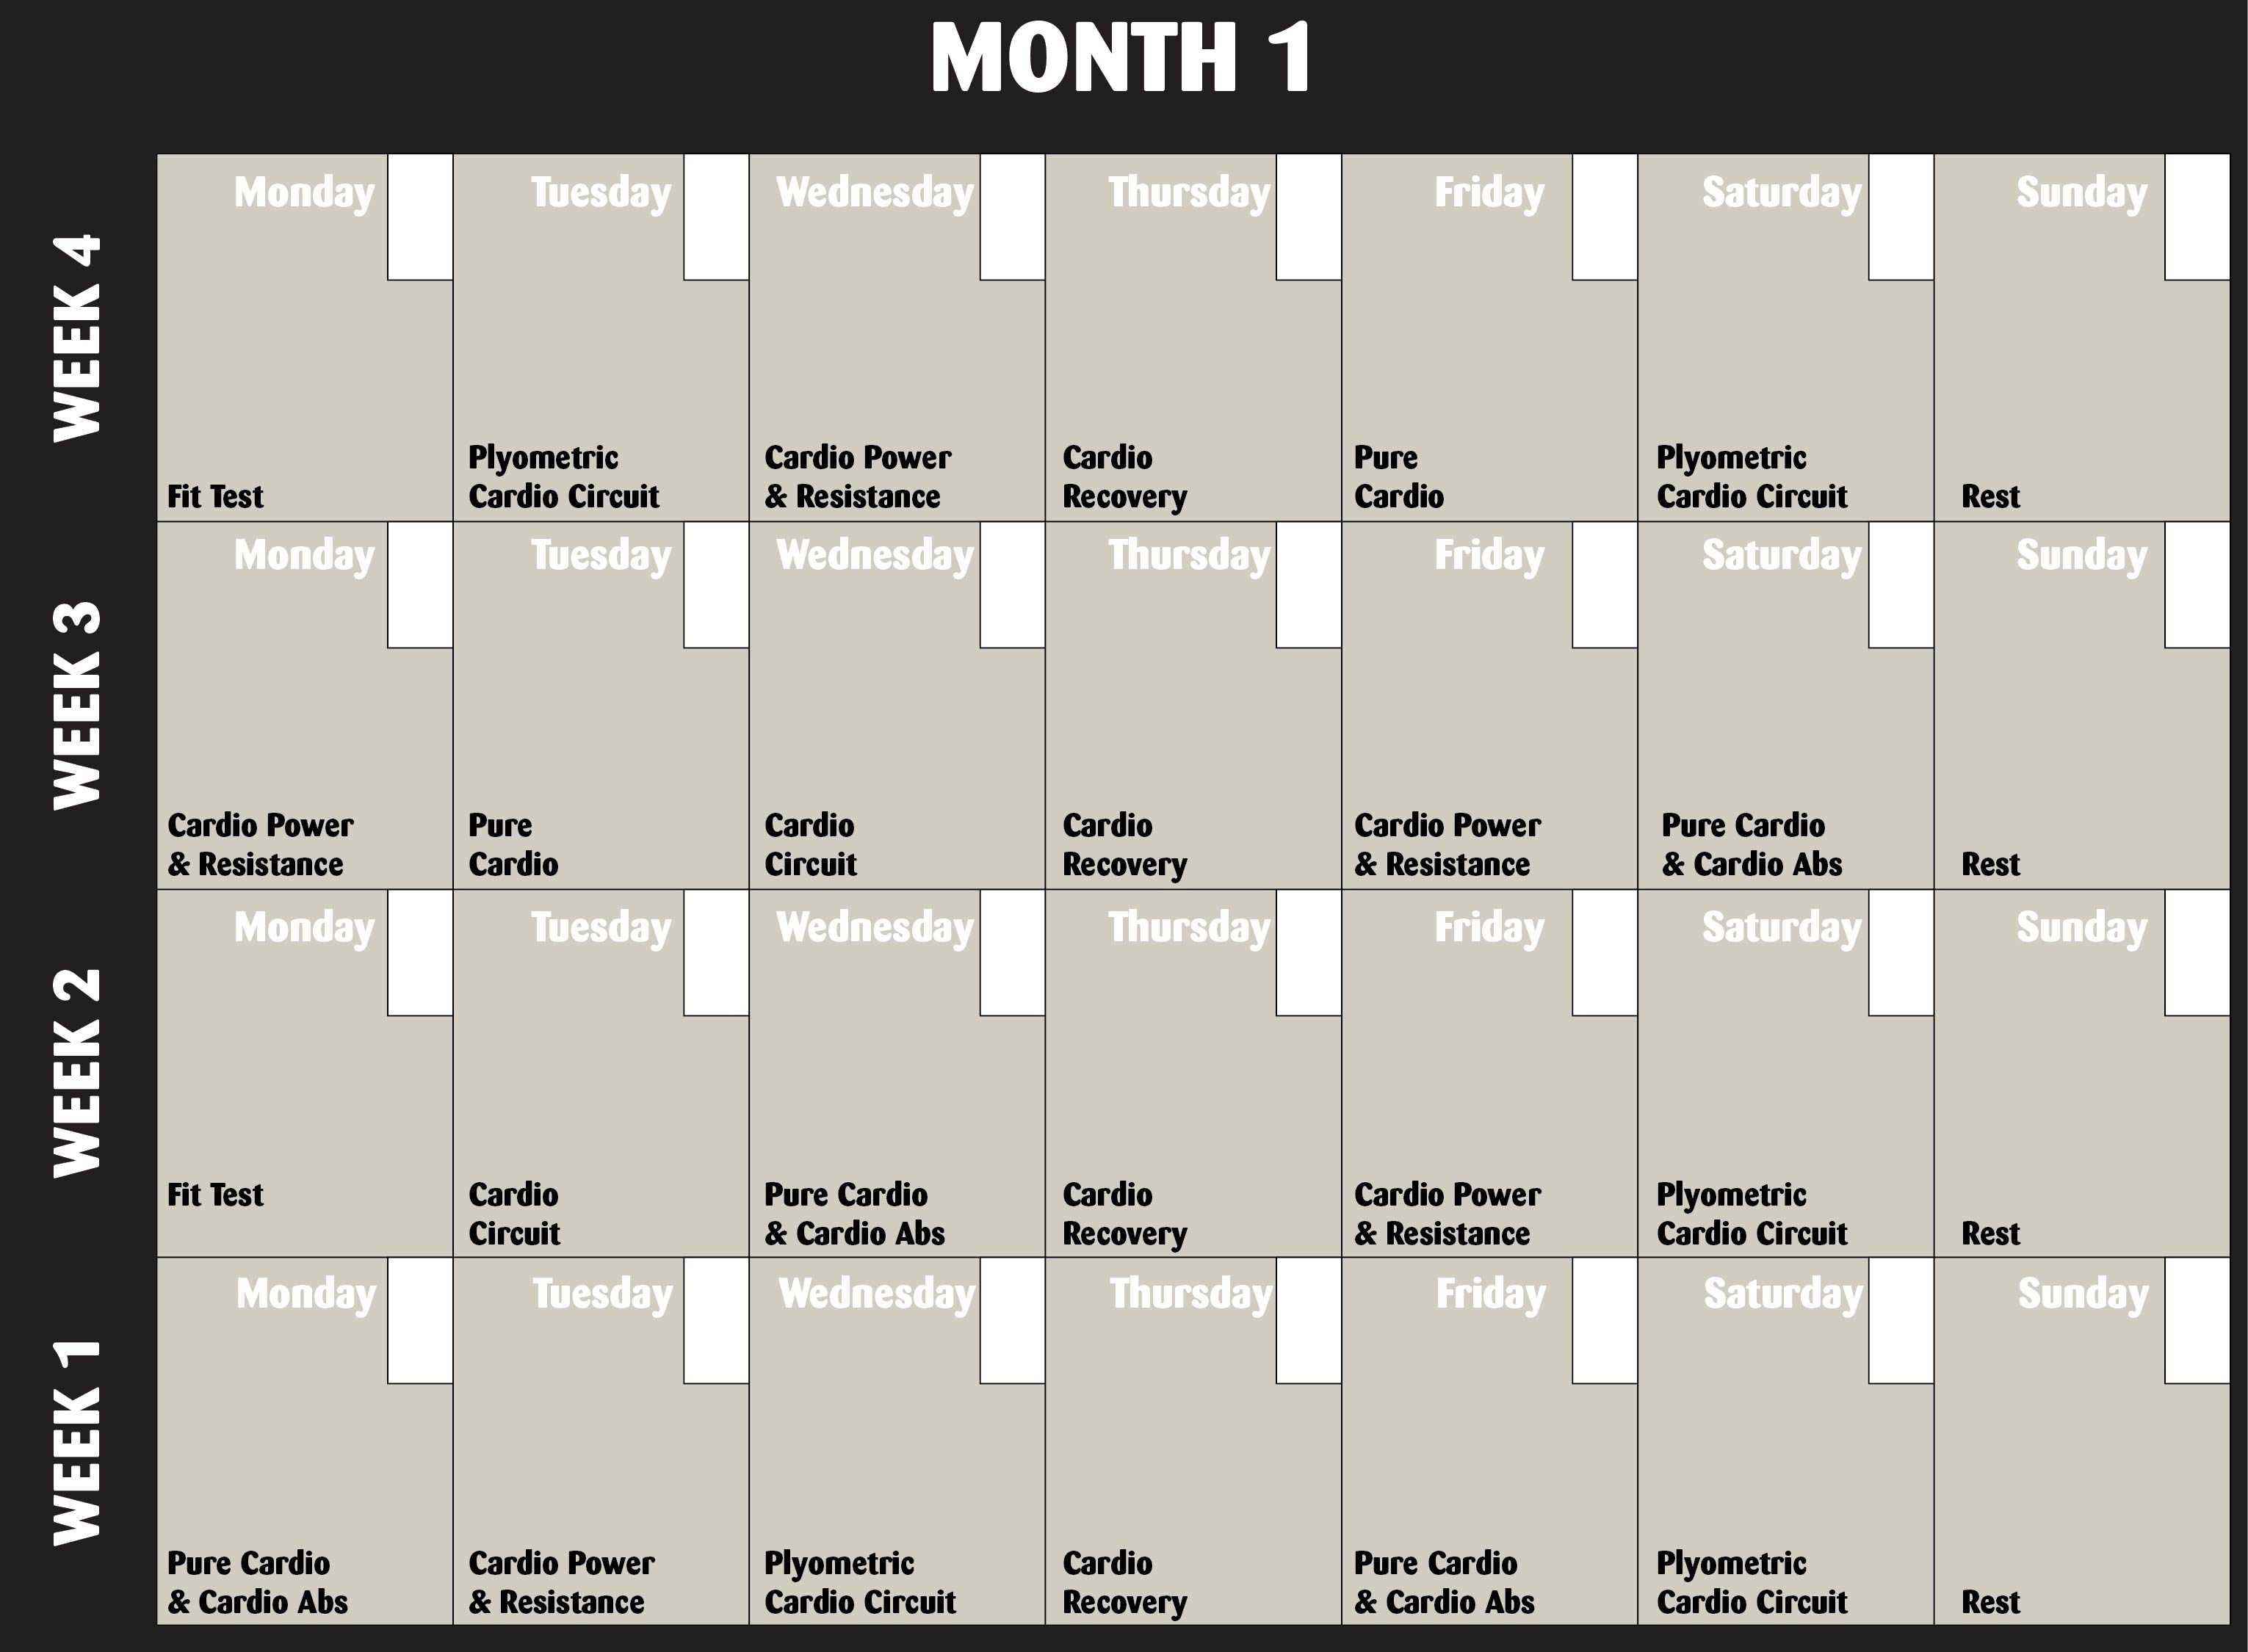 Insanity Workout Schedule.pdf